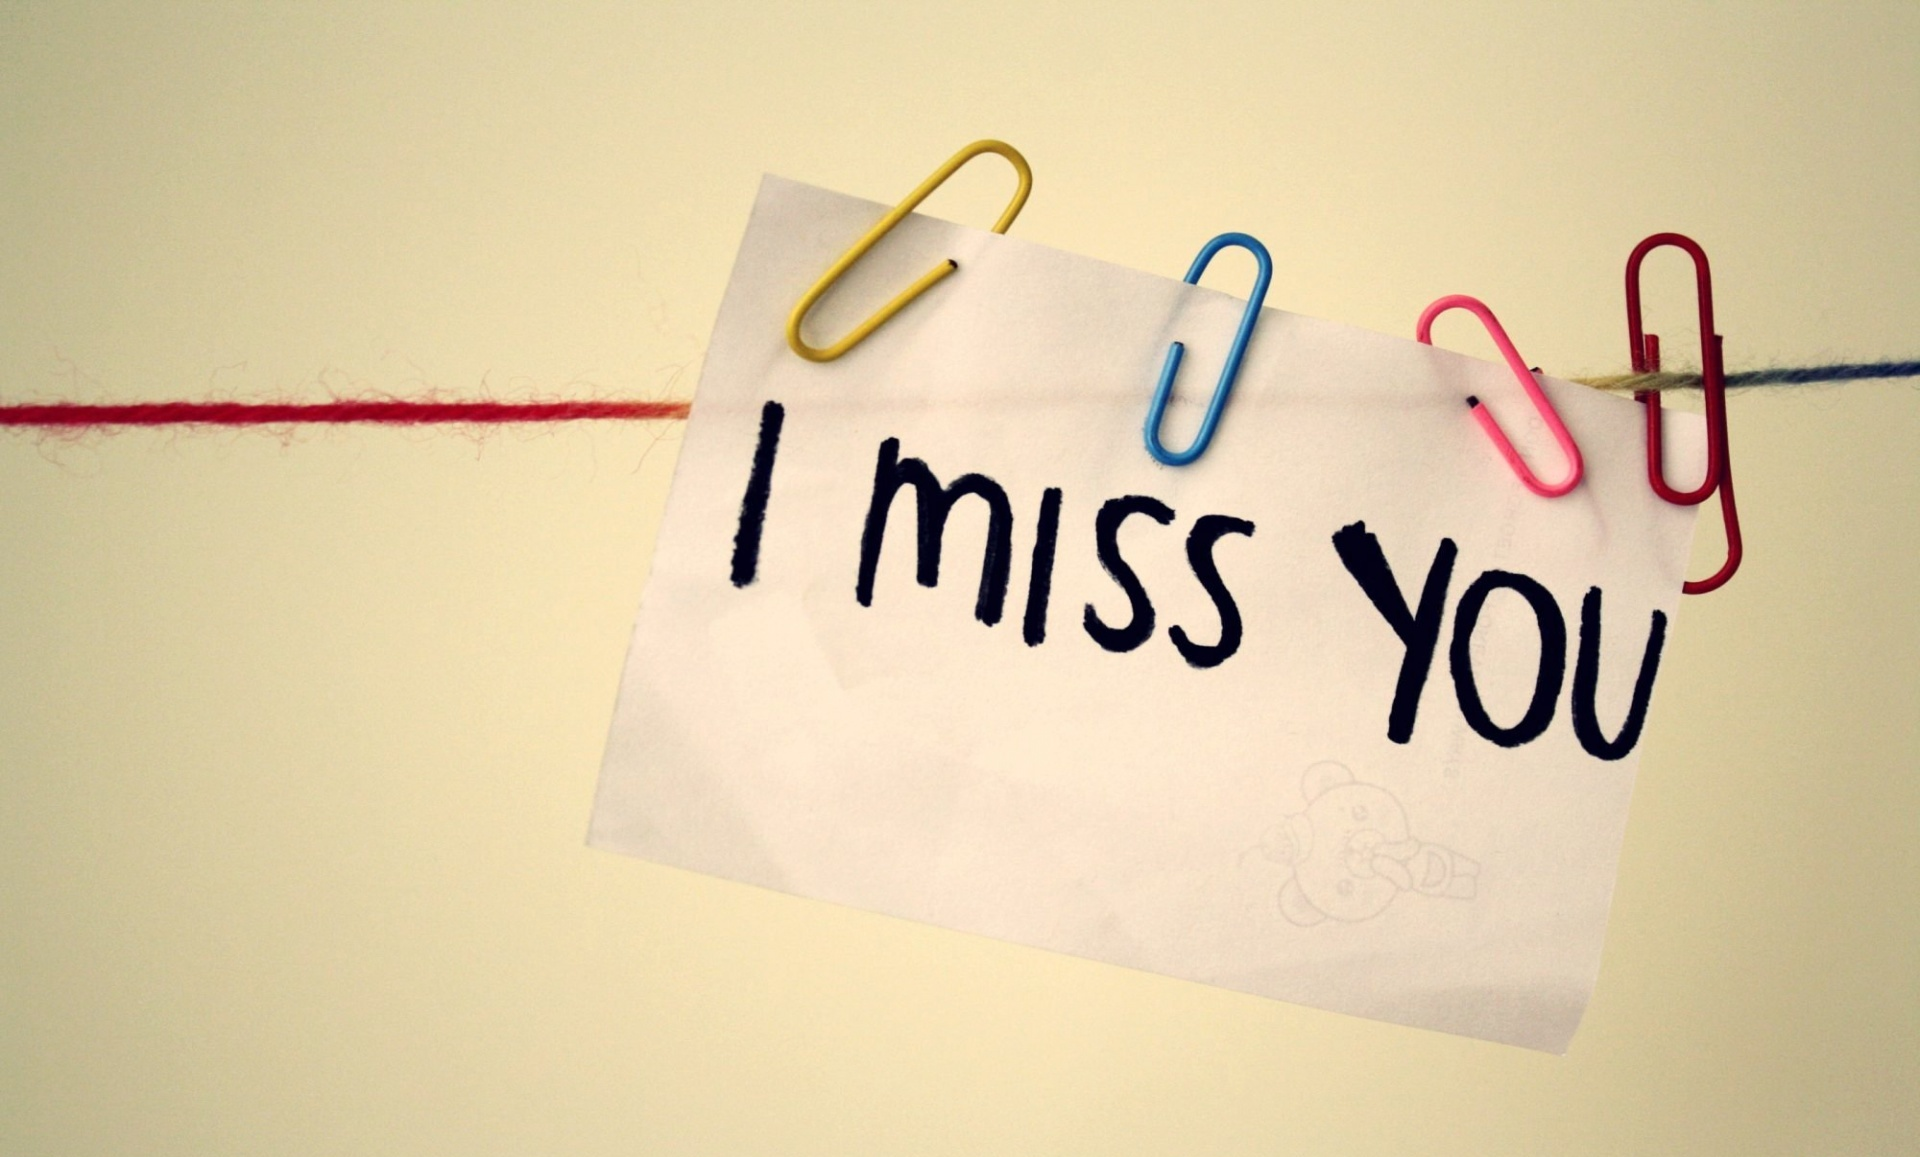 I Miss You Wallpaper 39 I Miss You Images and Wallpapers for Mac 1920x1157